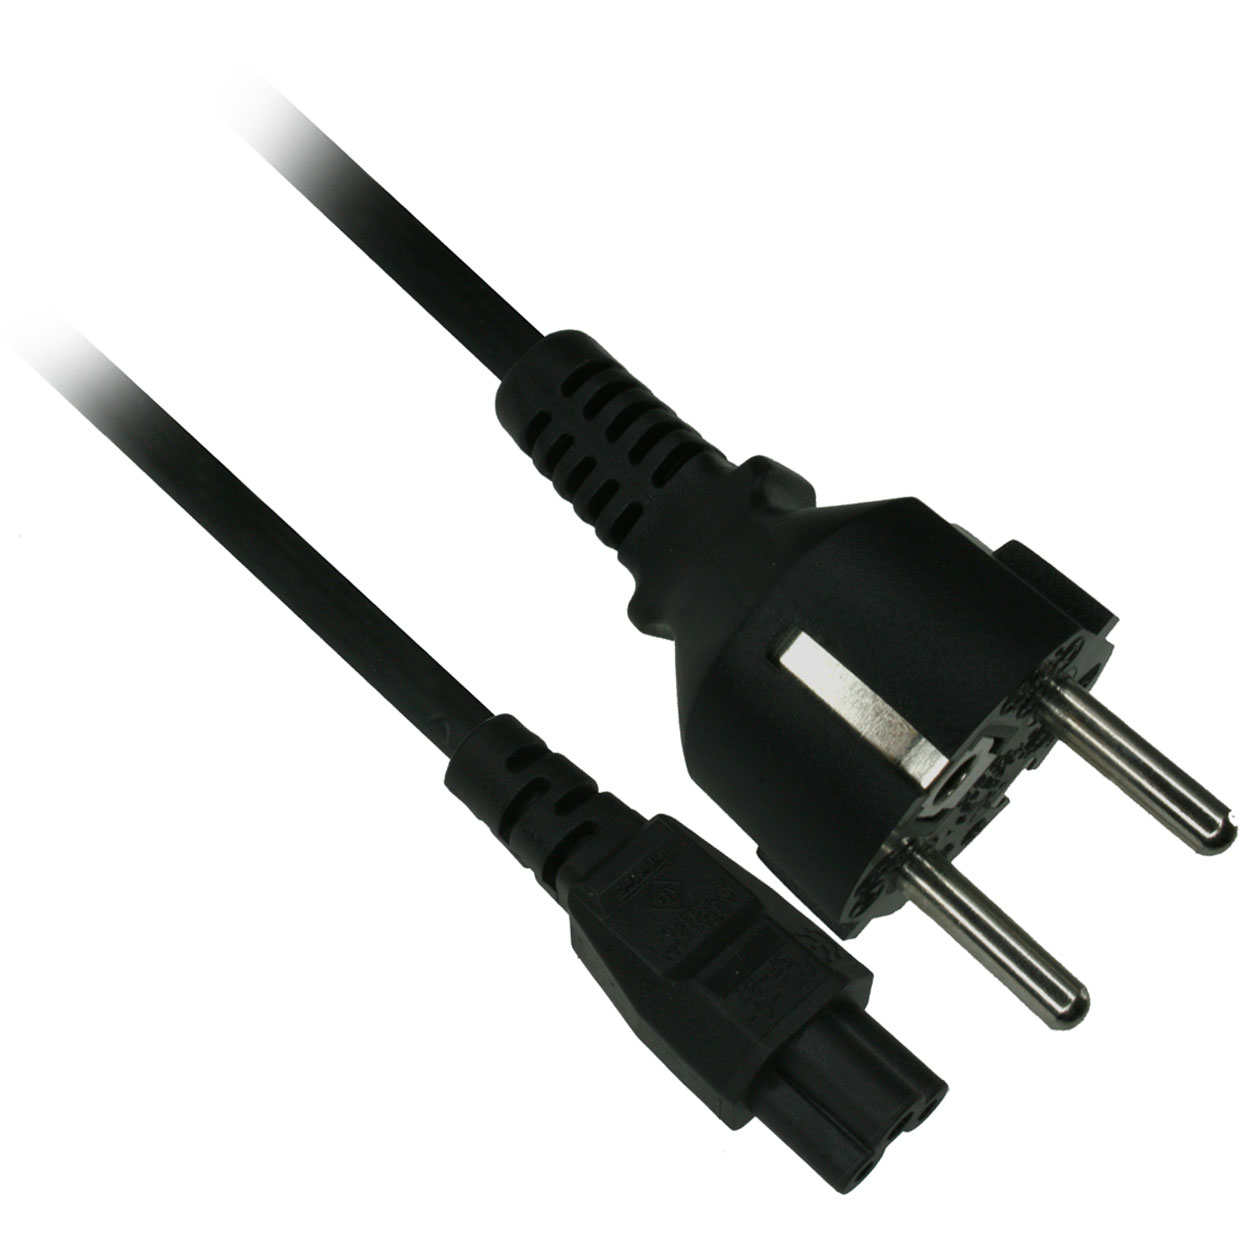 6ft 18awg Ac Power Cord Europe Cee 7 16 To Iec 60320 C6 Black Wiring Plug C13 Connector C15 Computer Socket